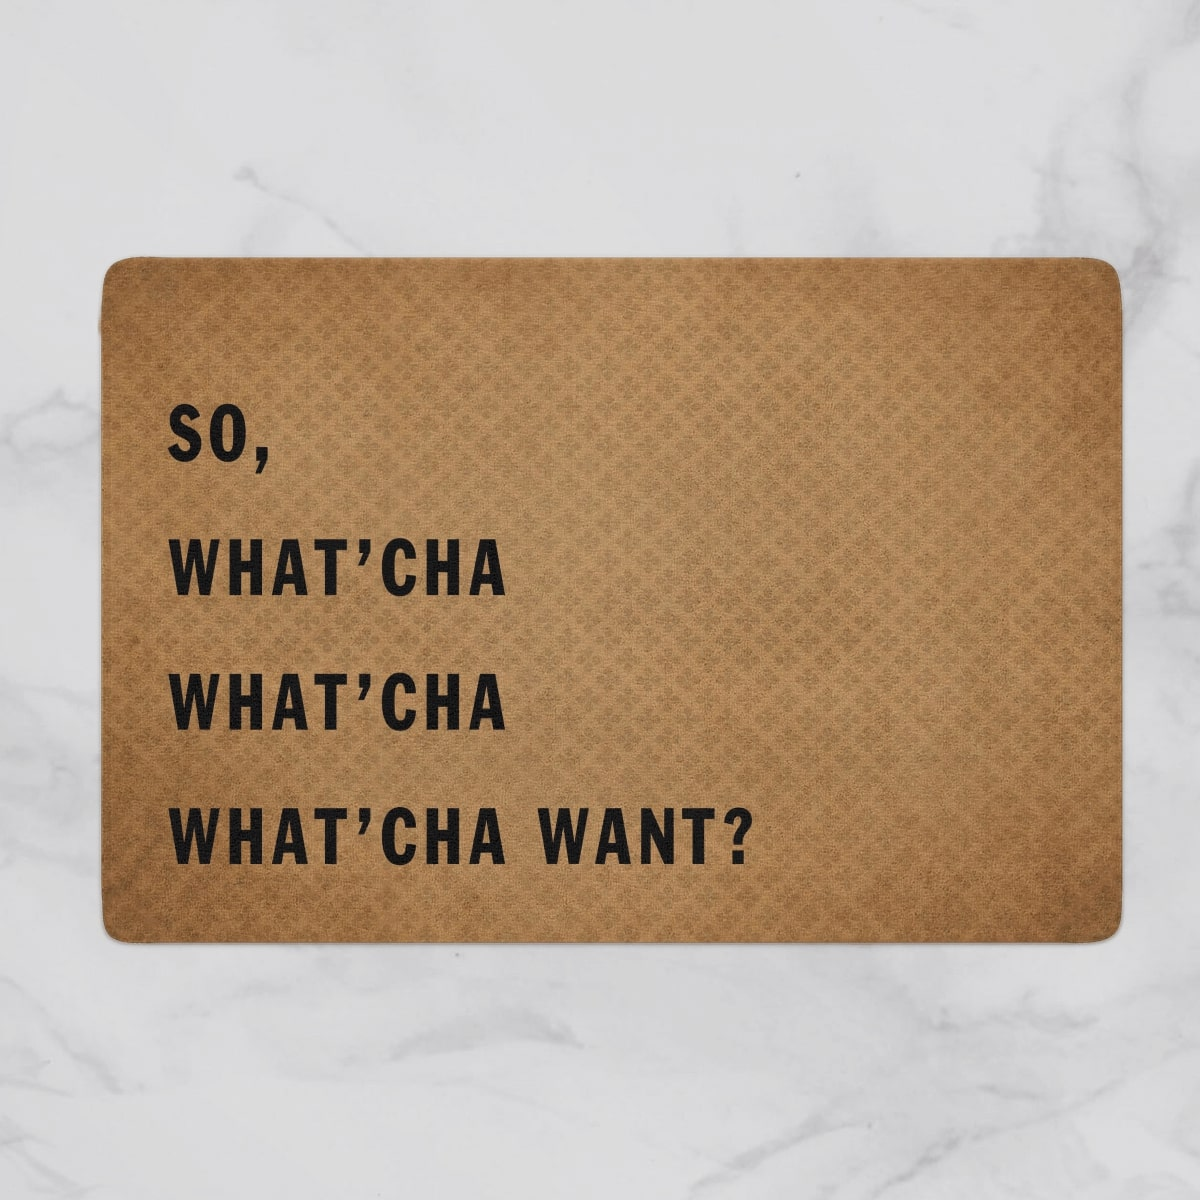 so what'cha what'cha what'cha want full printing doormat 2